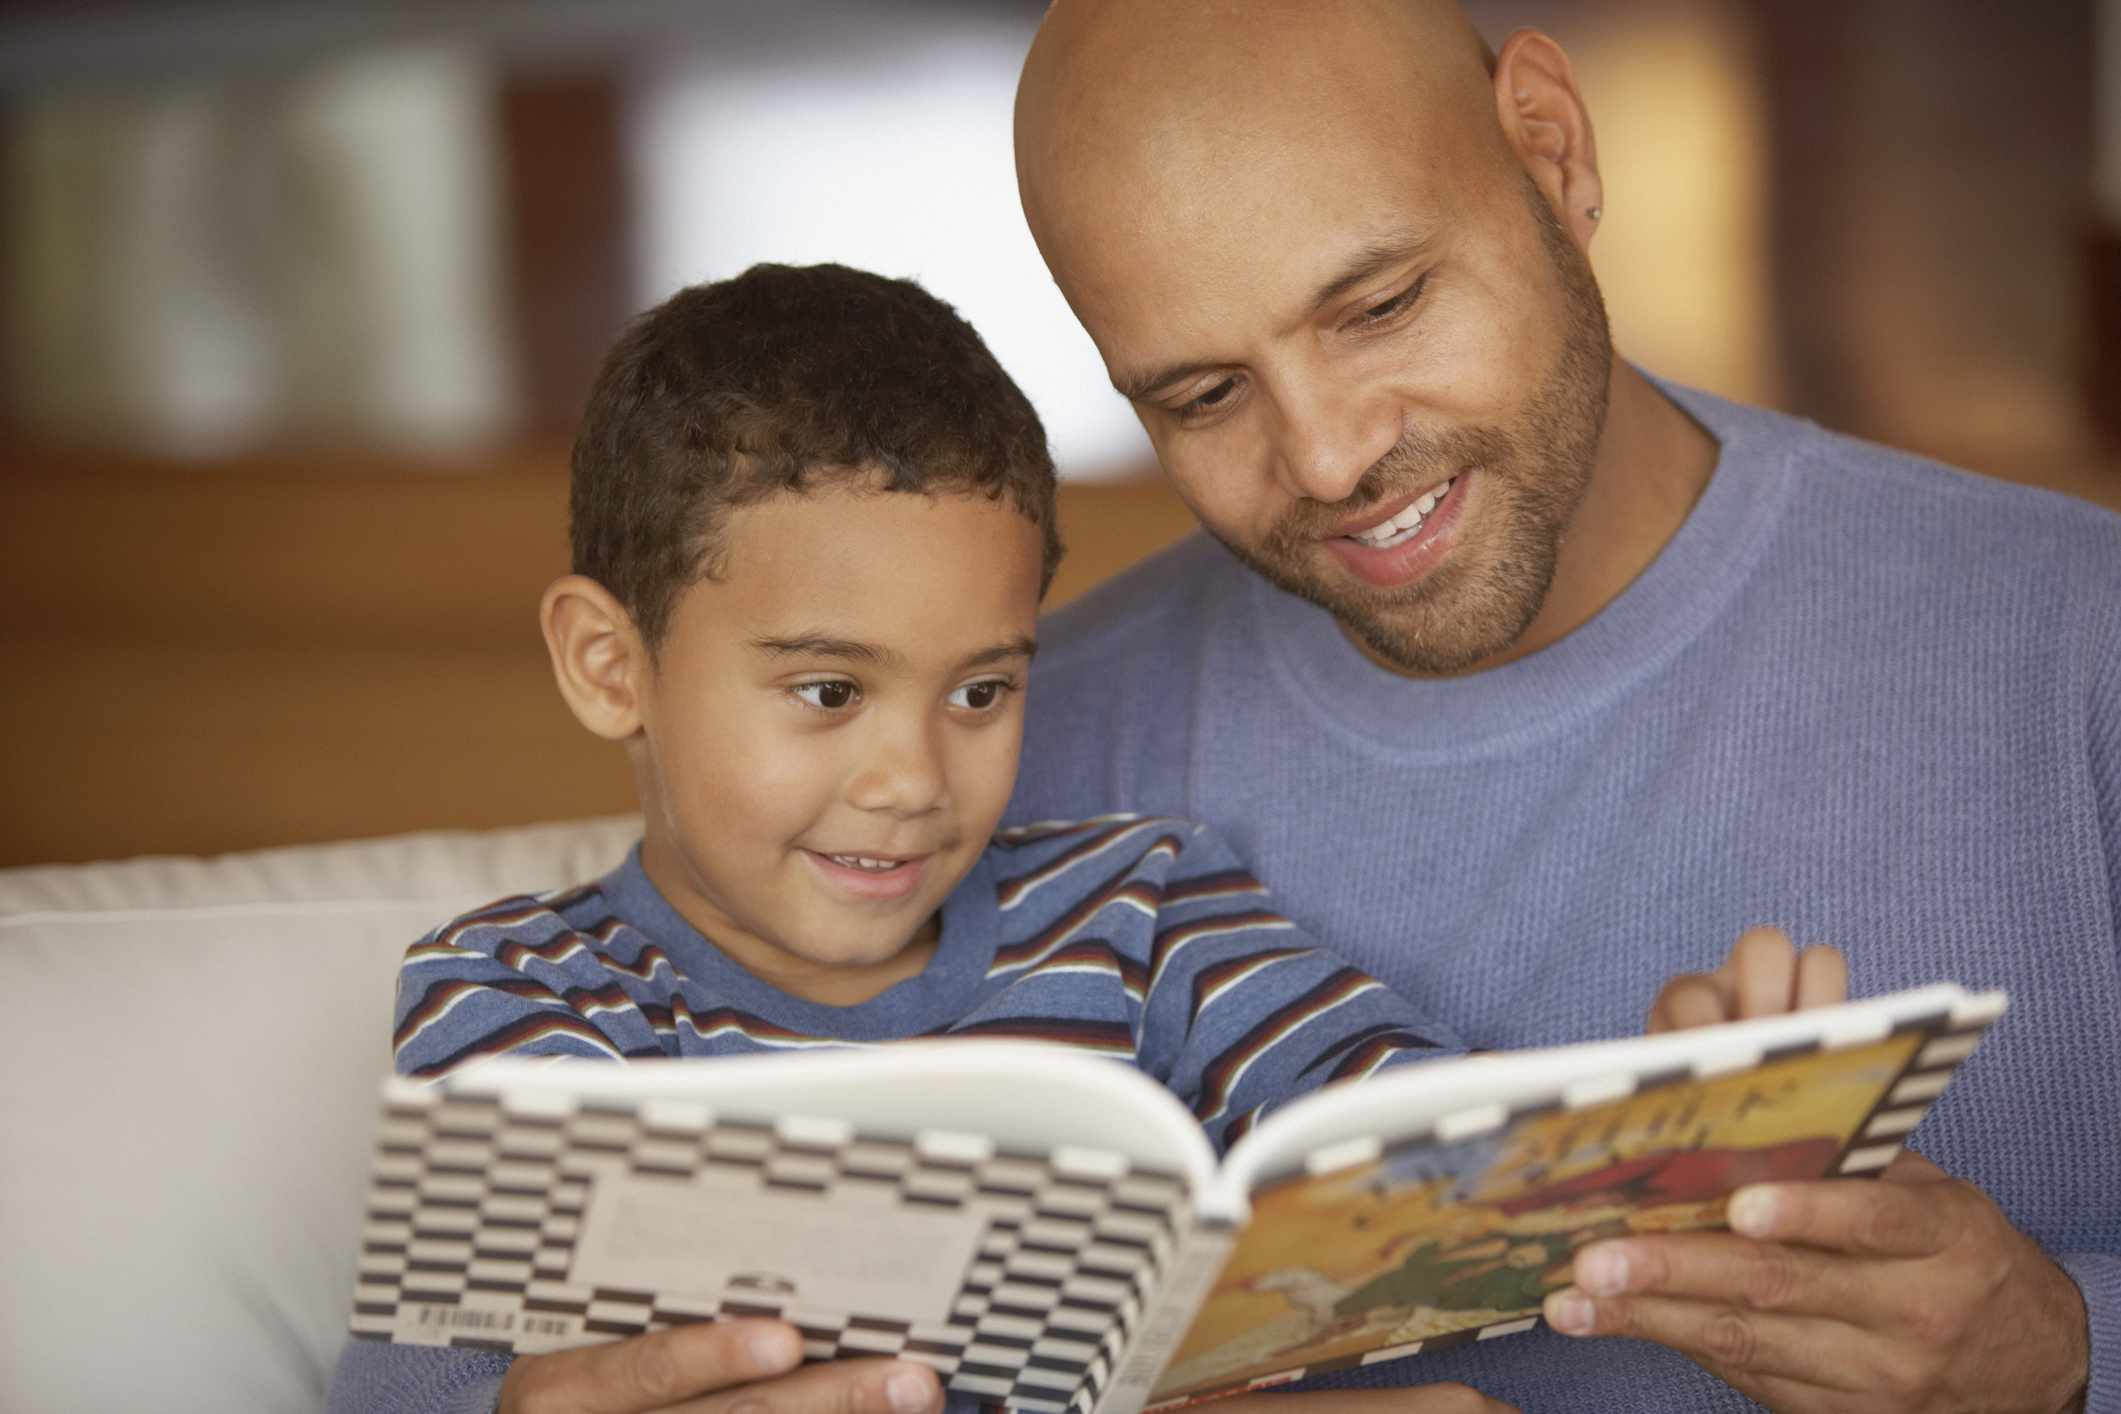 Father reads with son on couch